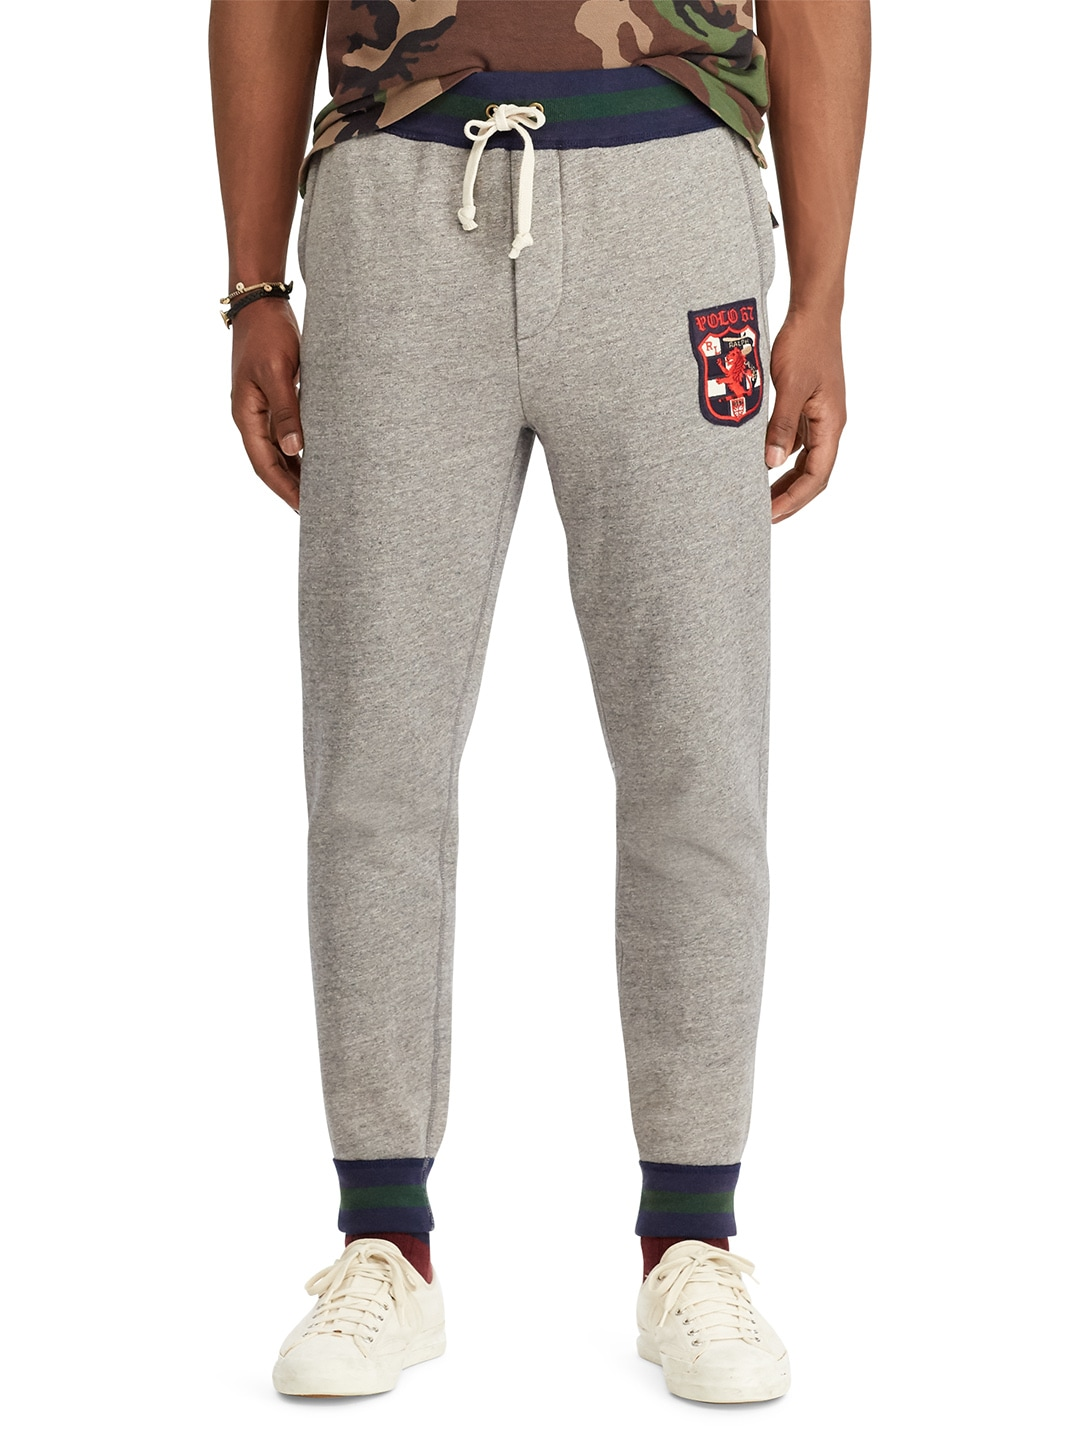 bfbe34f94b1 Polo Denim Track Pants - Buy Polo Denim Track Pants online in India